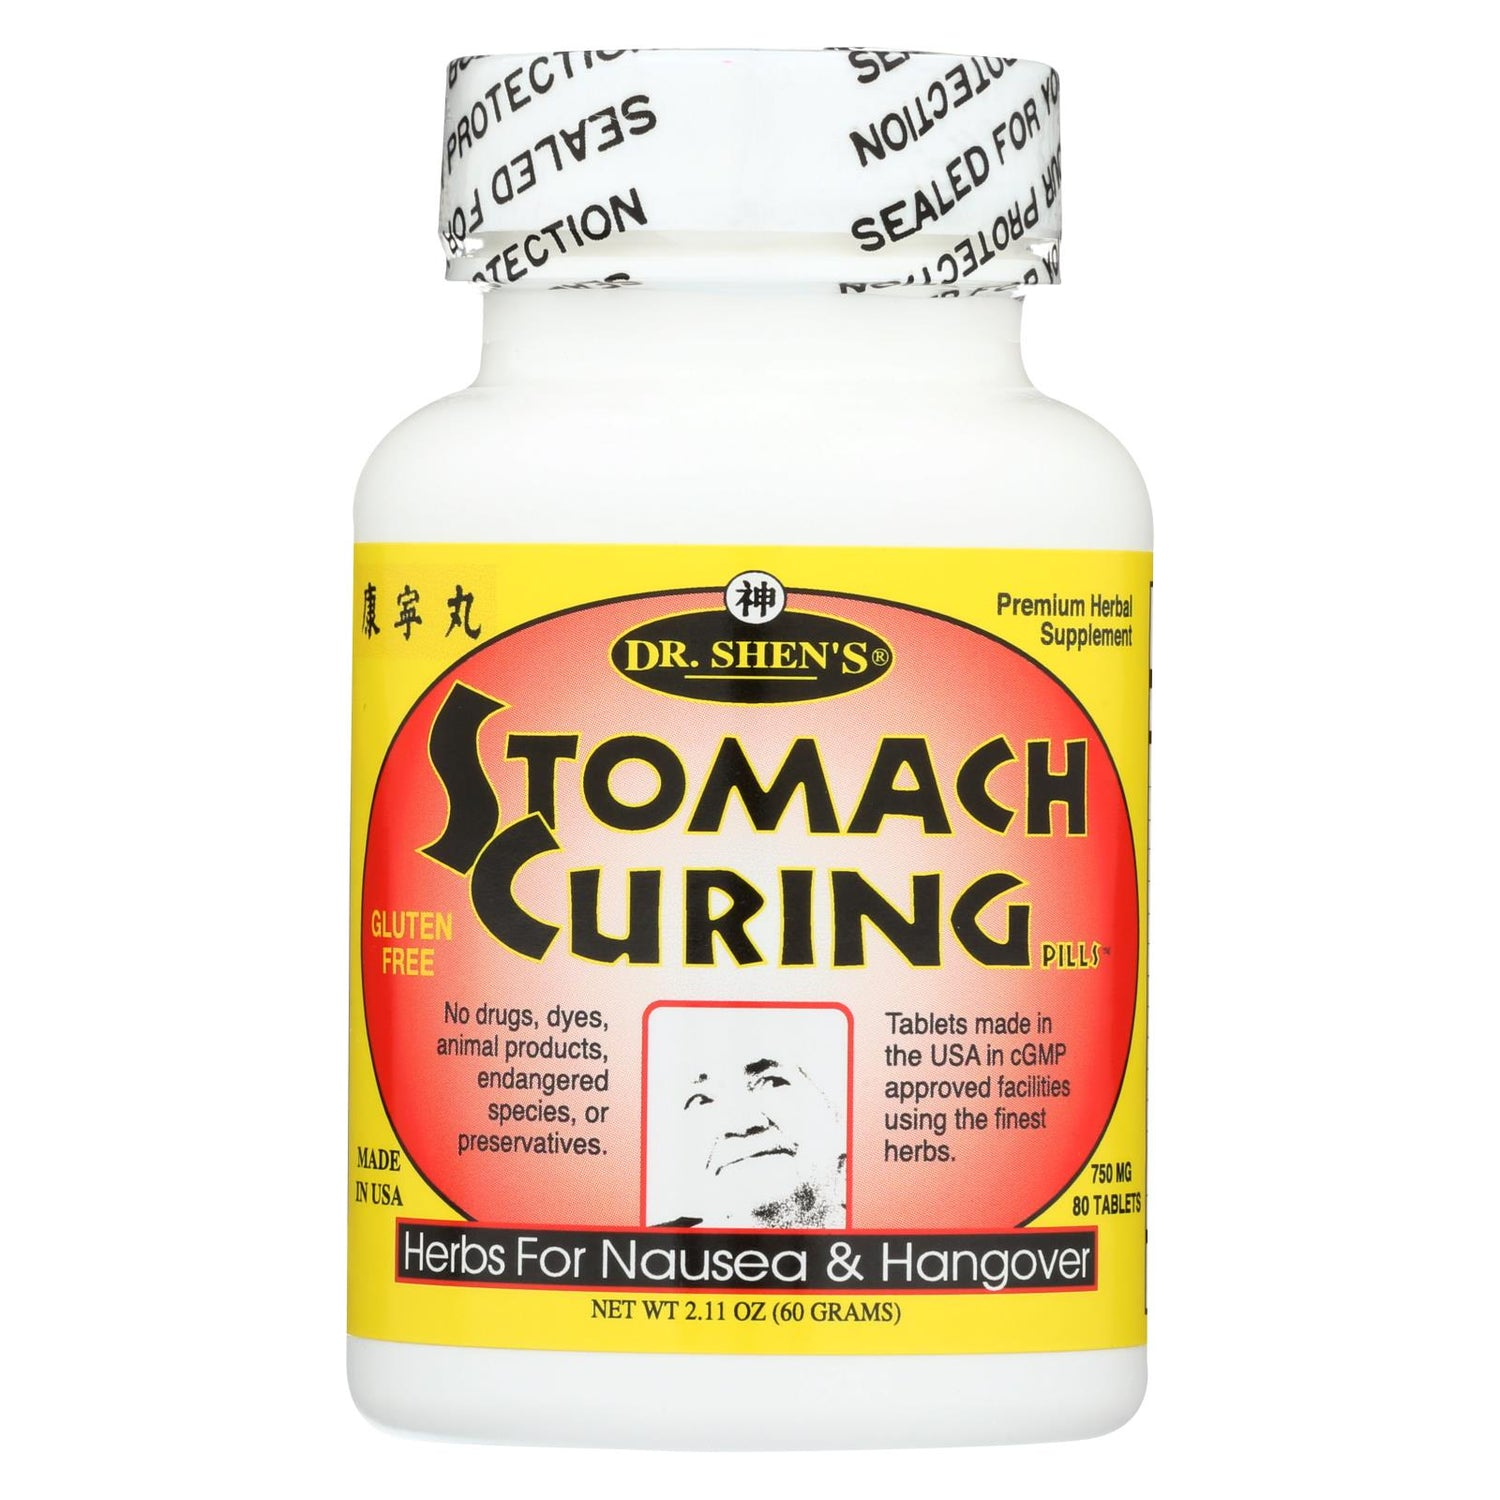 Dr. Shen's Stomach Curing For Nausea - 750 Mg - 80 Tablets